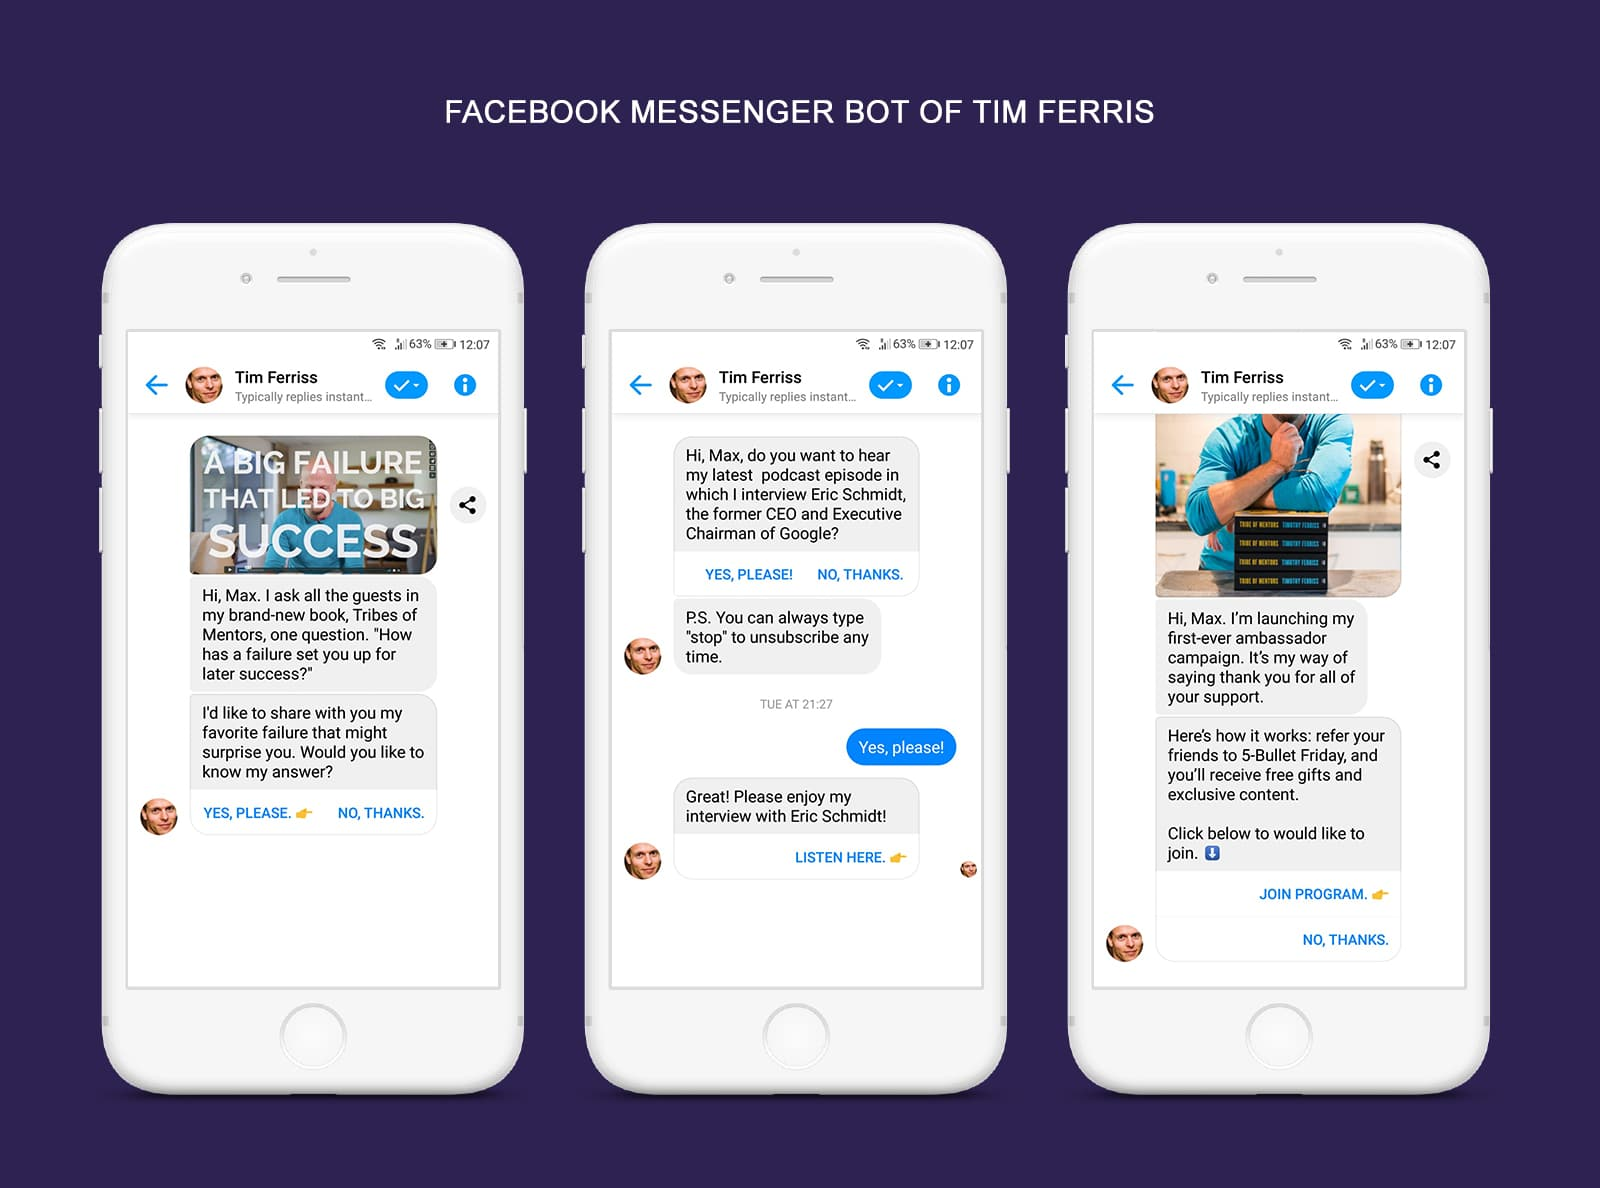 Facebook Messenger Bot of Tim Ferris